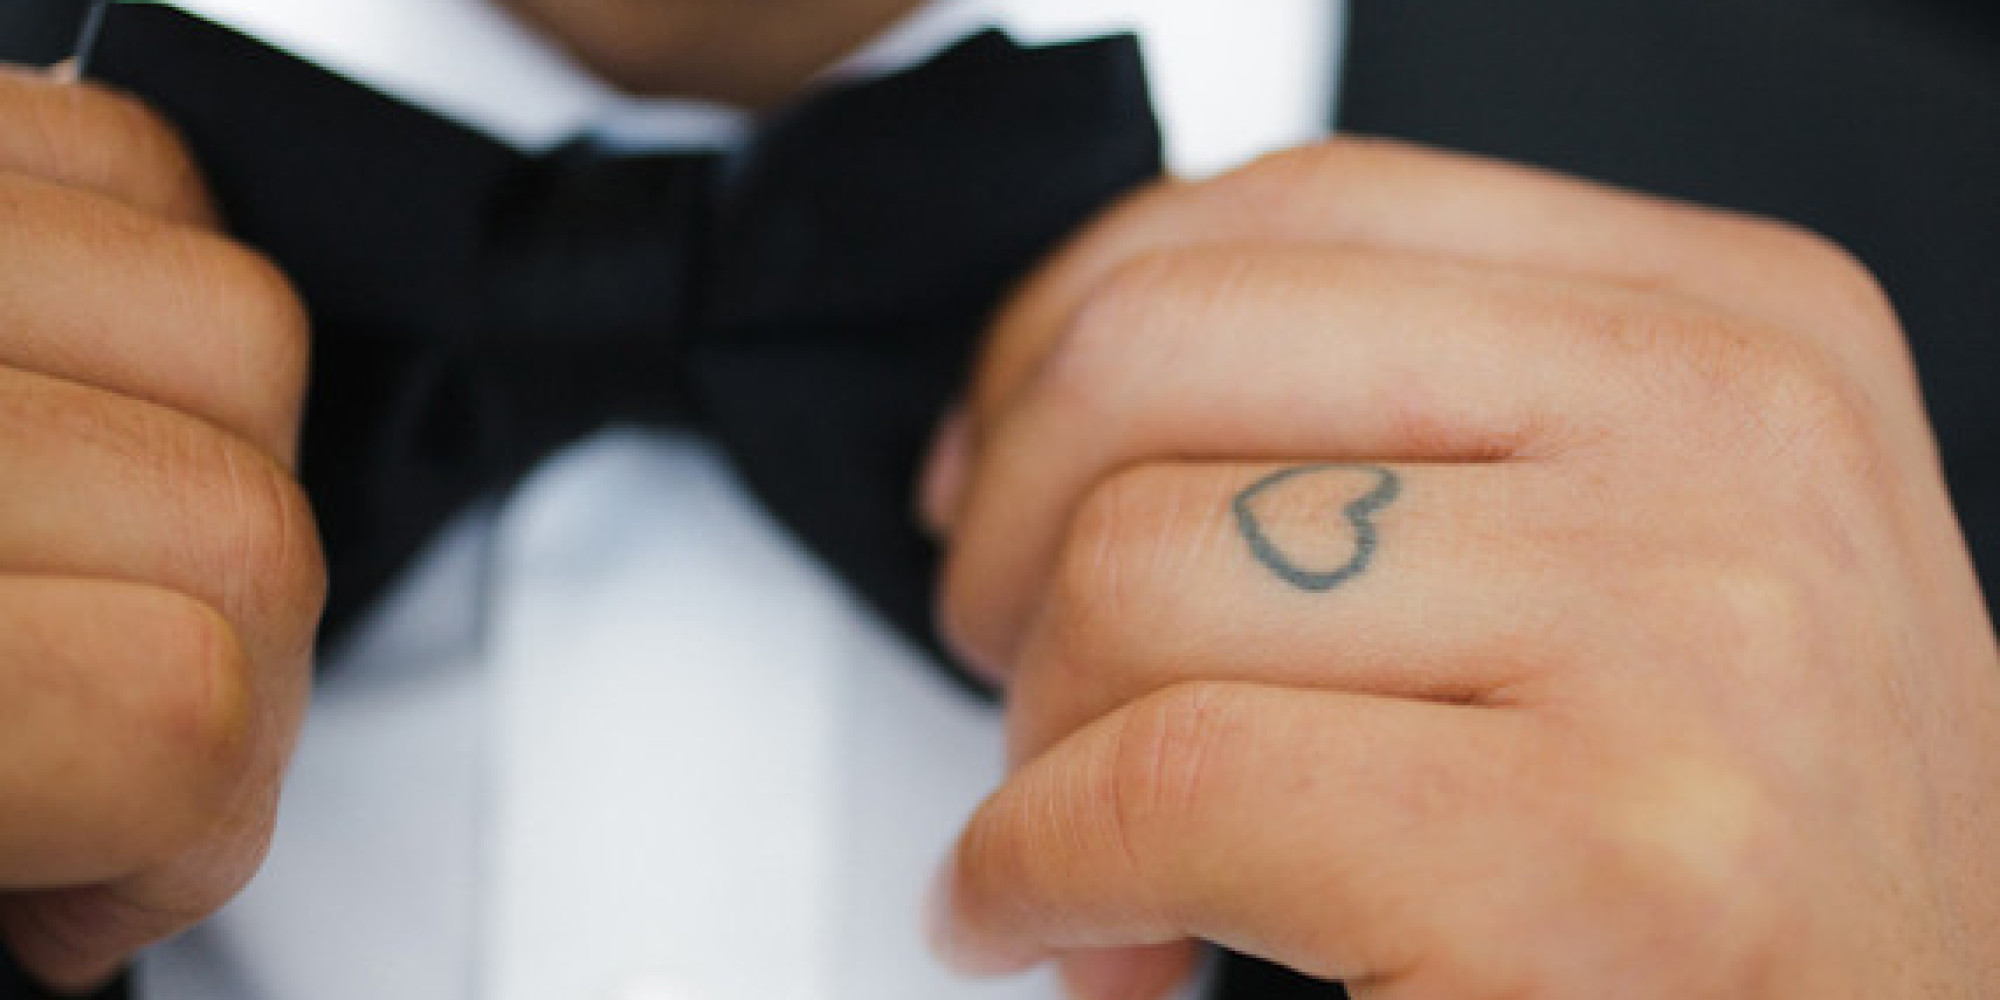 8 Tattoo Wedding Ring Ideas That Show Your Commitment For Like